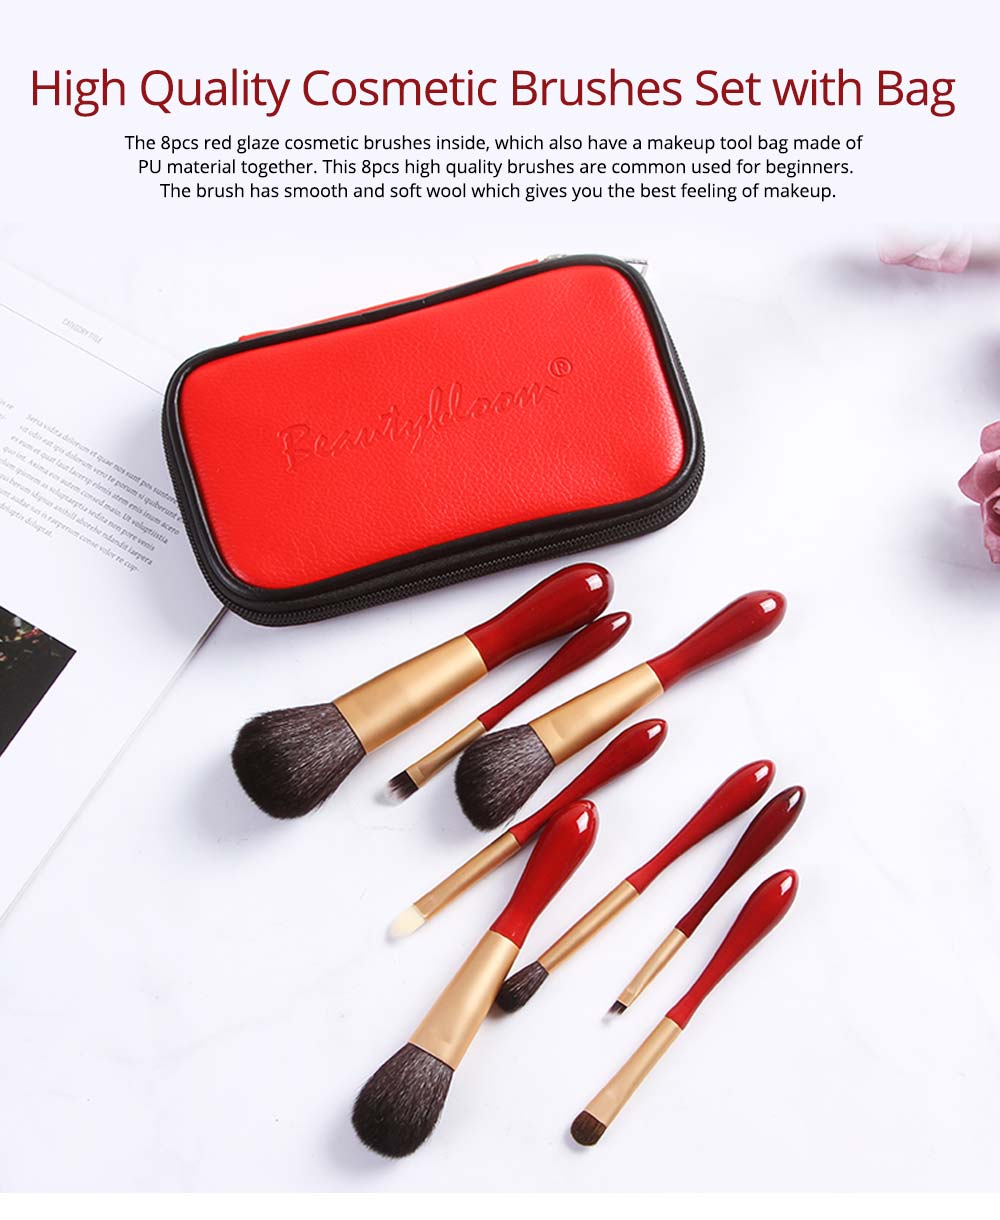 8pcs Red Glaze Makeup Brushes Soft Cosmetic Eyebrow Shadow Brush Tool Set with Bag for Freshman of Makeup 0